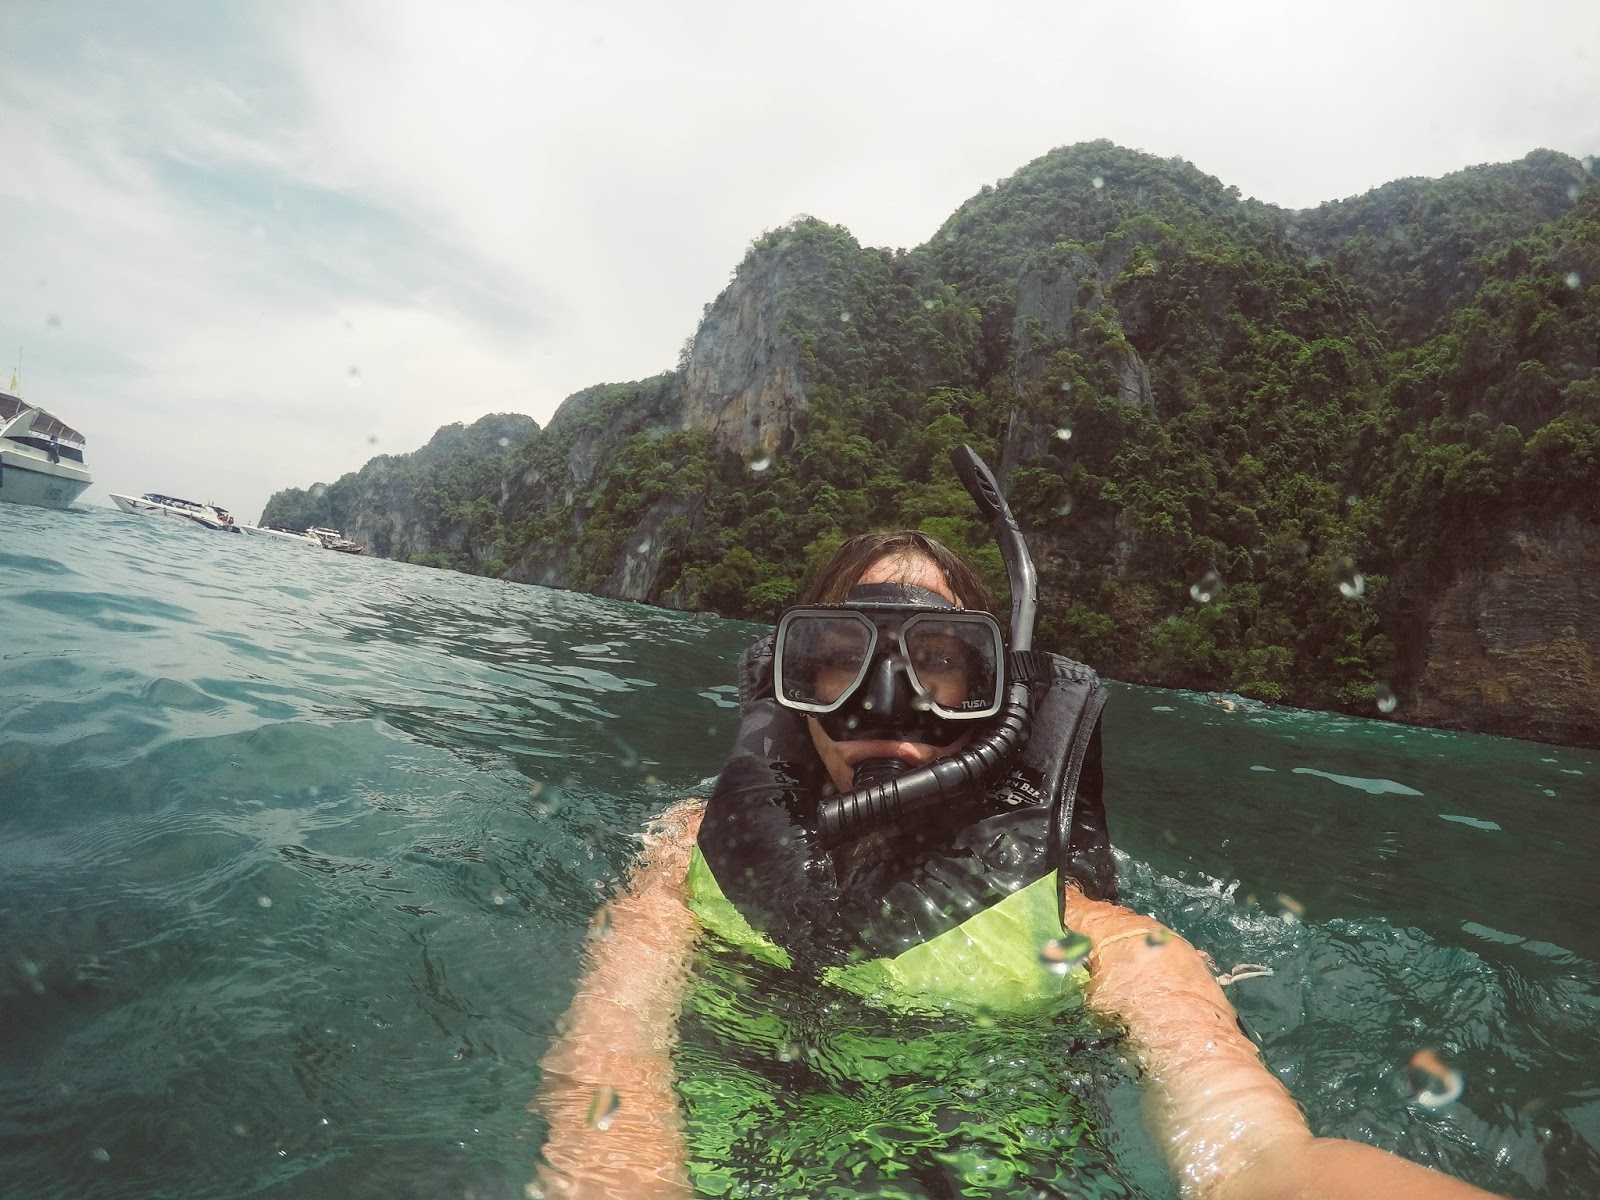 phuket-travel-ko-phi-phi-krabi-dc-blog-travelblog